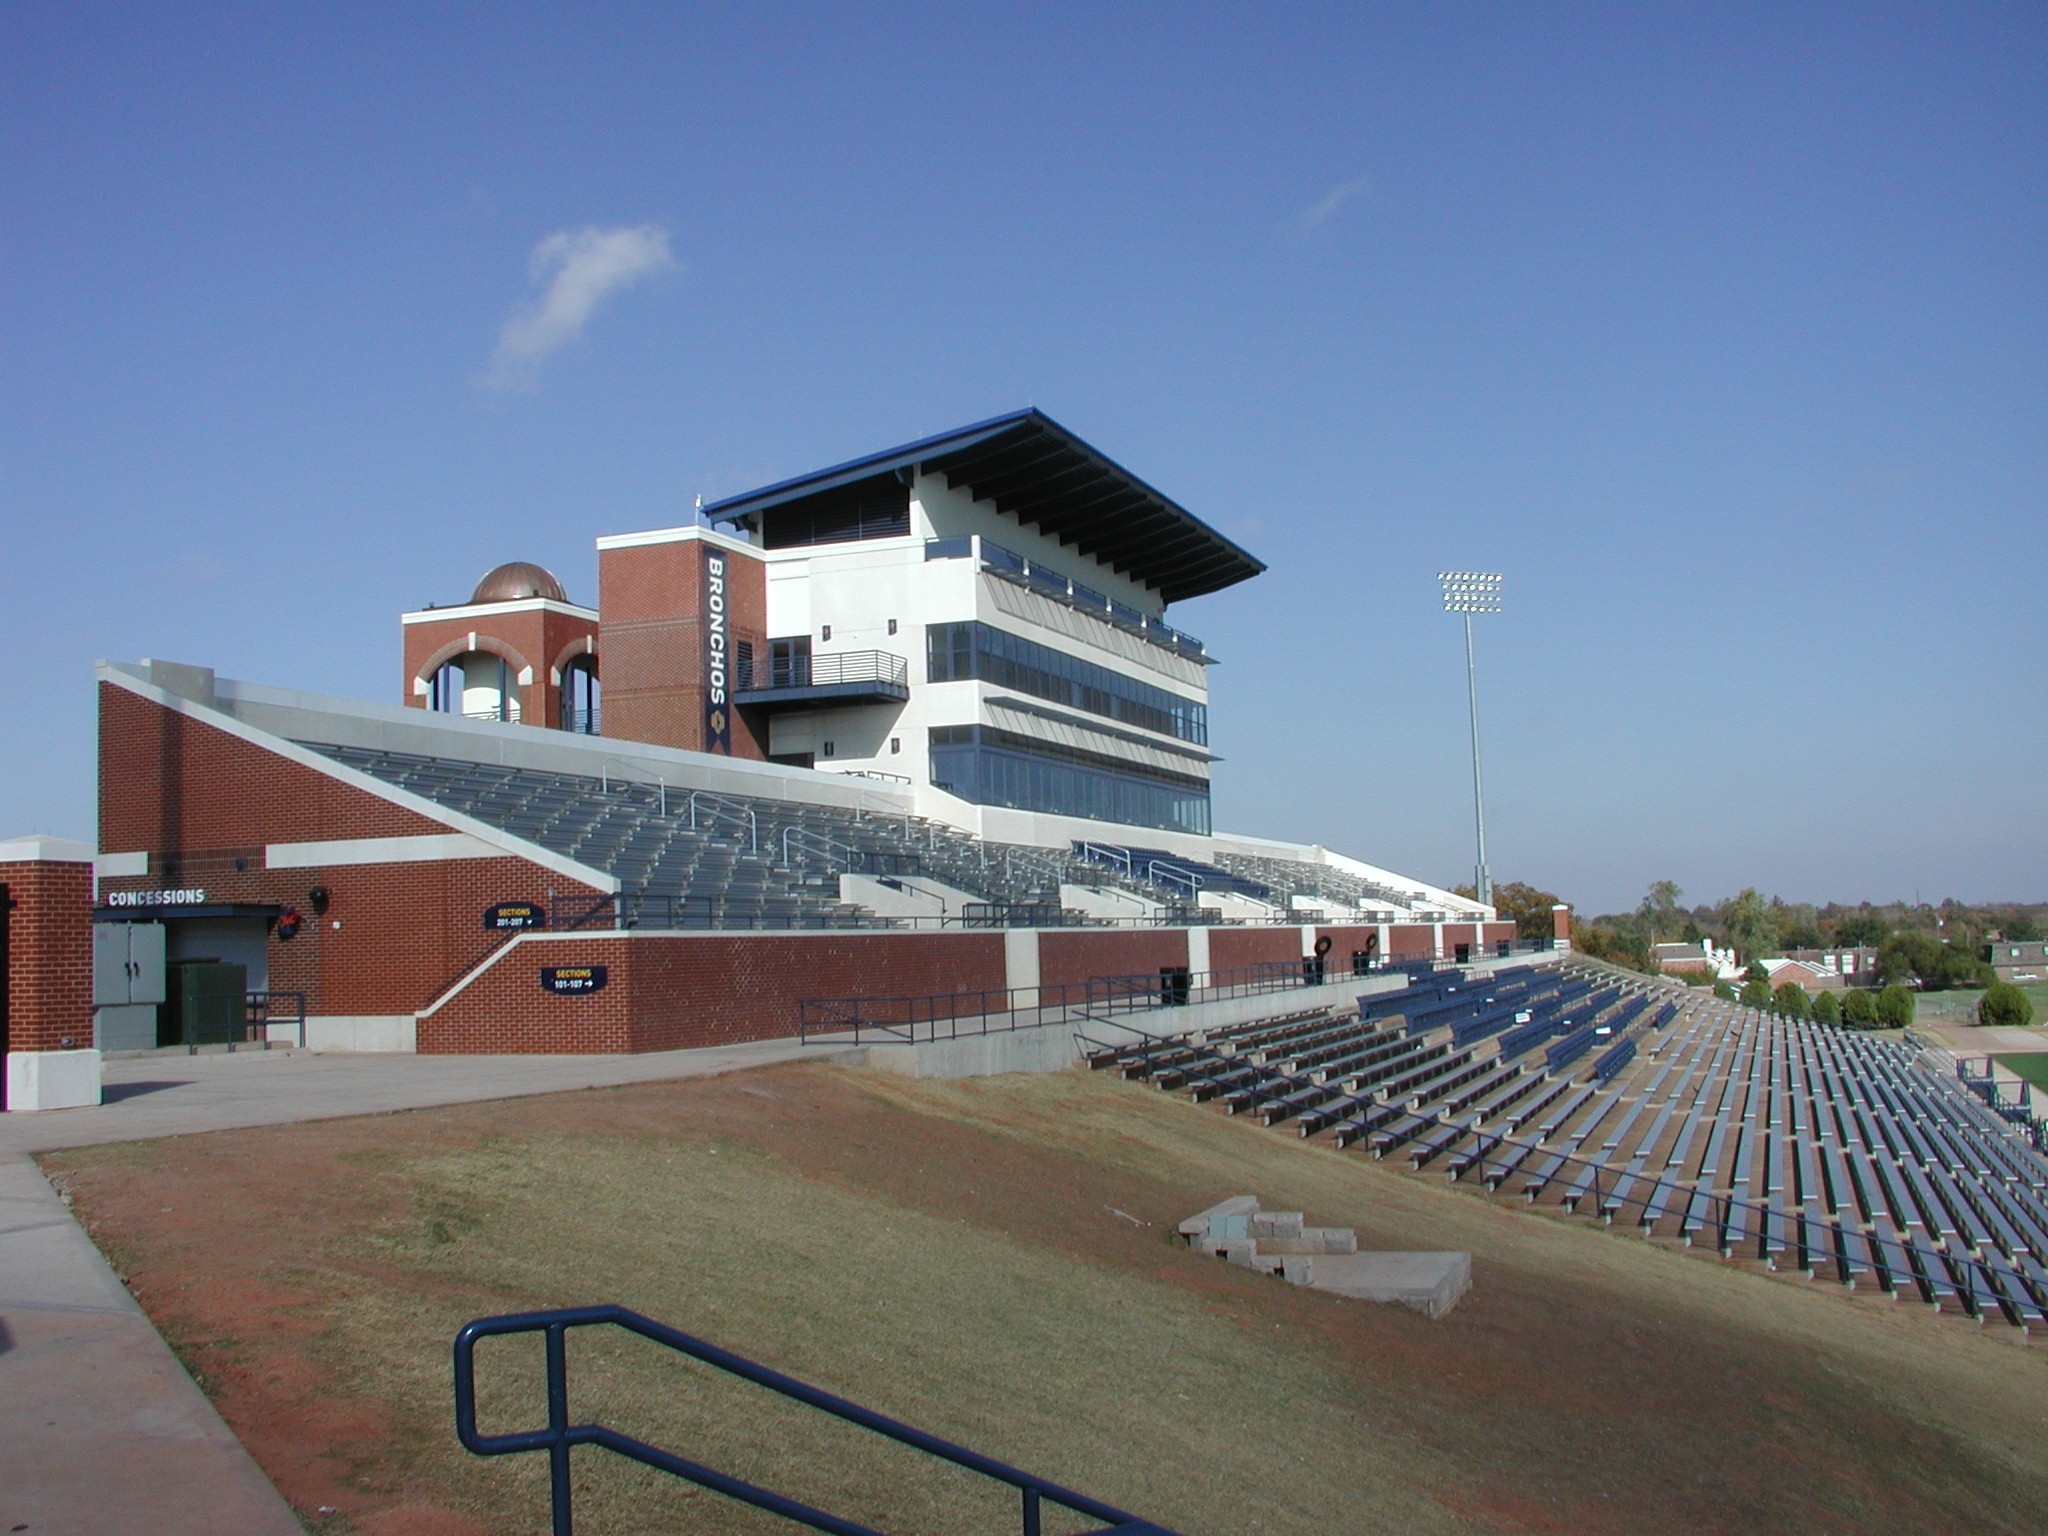 Oklahoma_S.E_Edmond Oklahoma_UCO Wantland Stadium Expansion